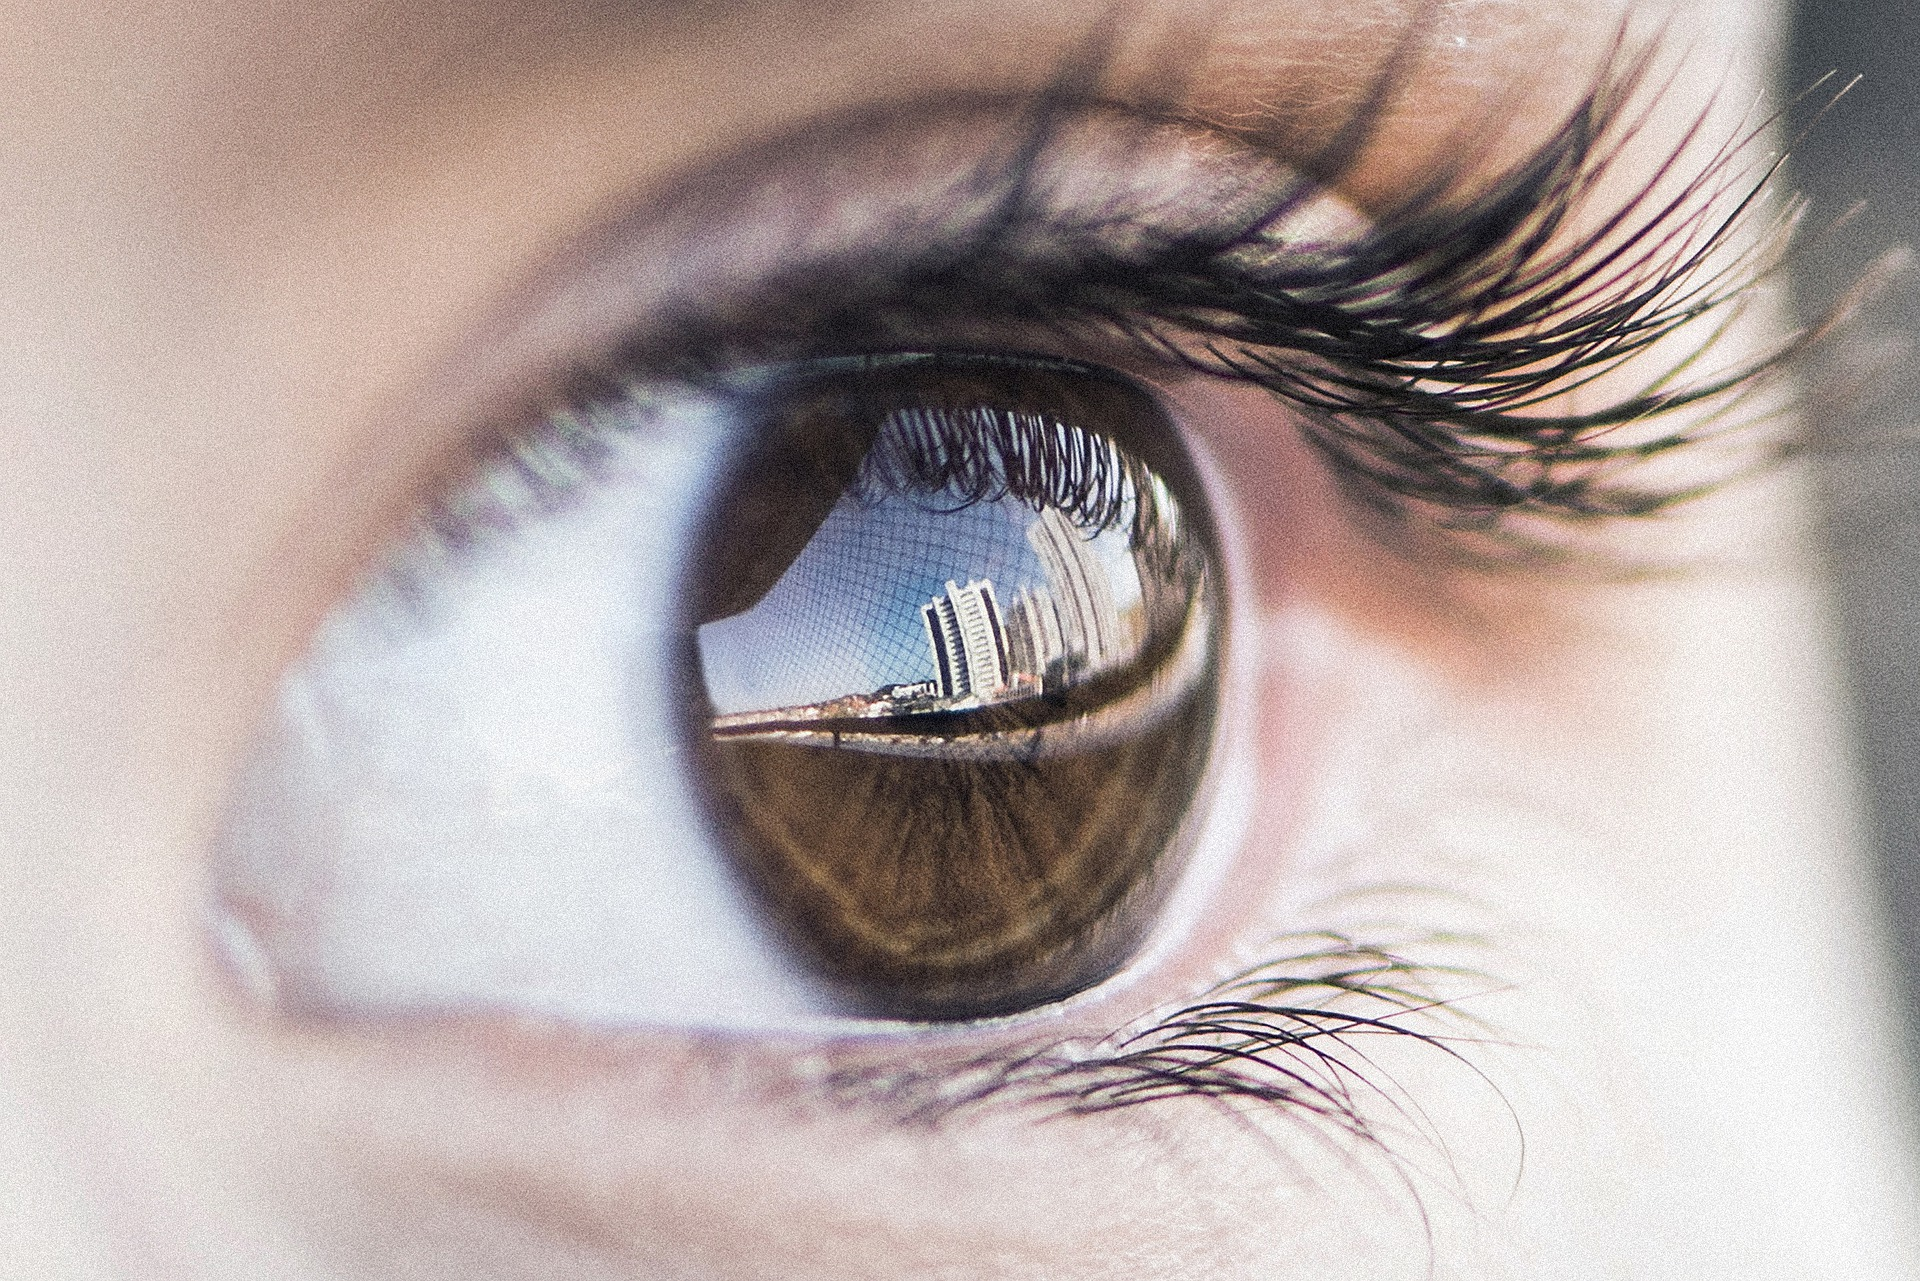 There are new and exciting treatments for diabetes blindness